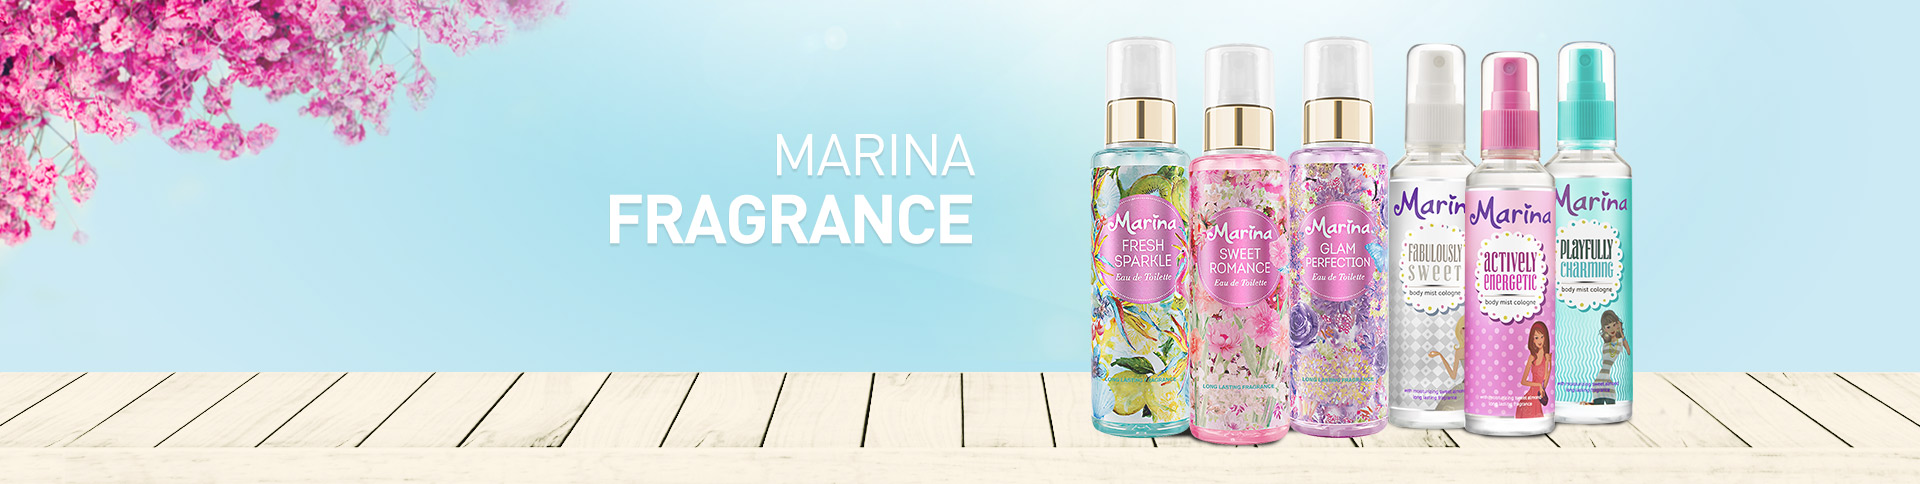 MARINA FRAGRANCE